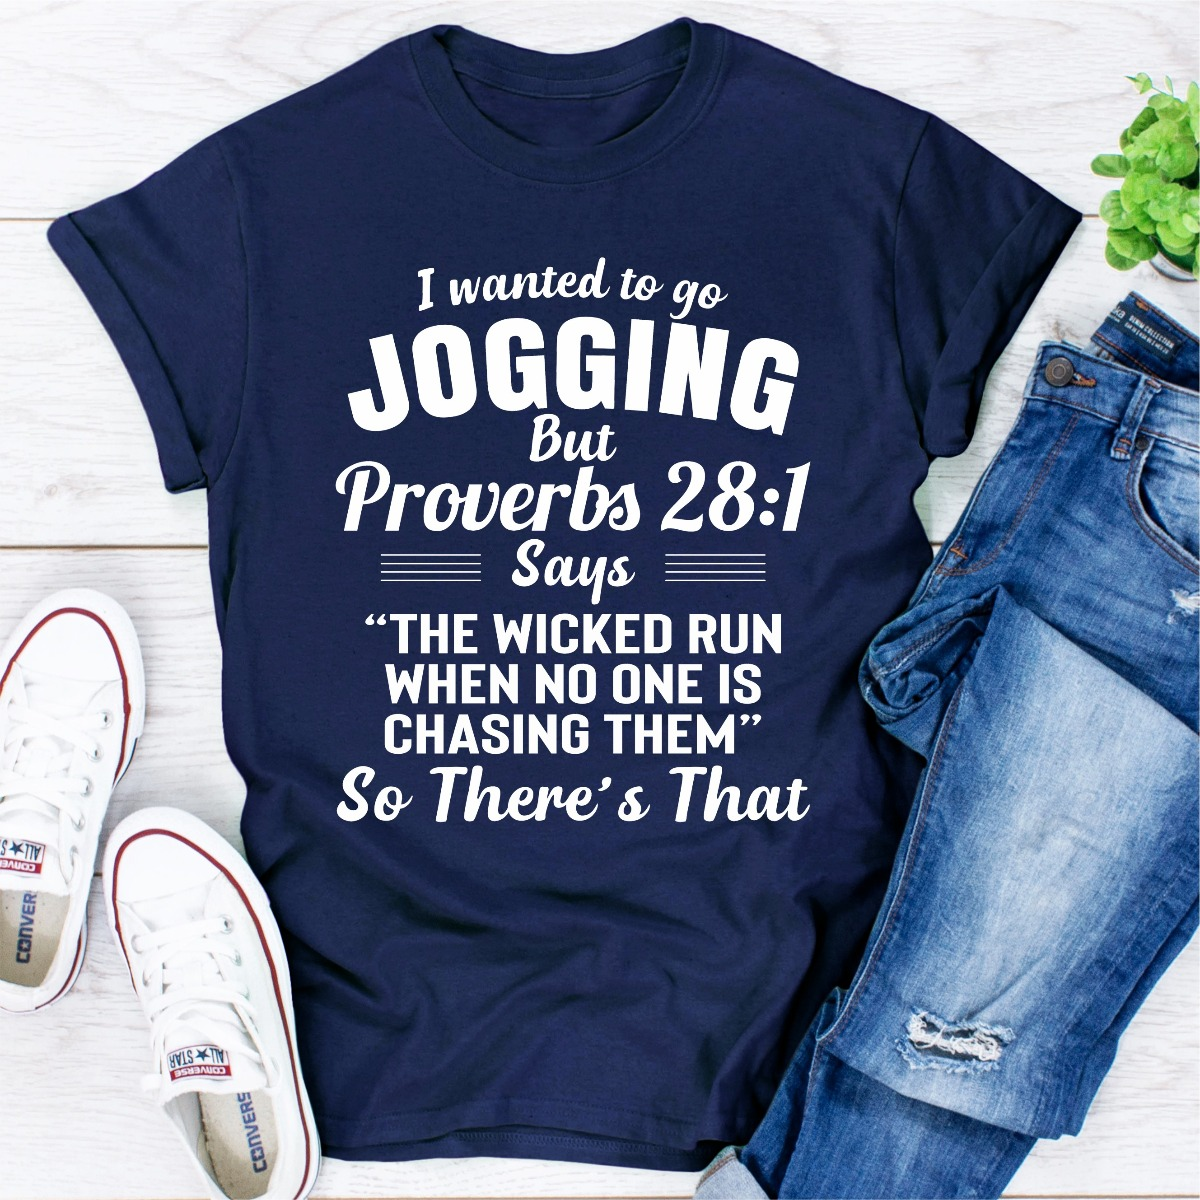 I Wanted To Go Jogging (Navy / L)